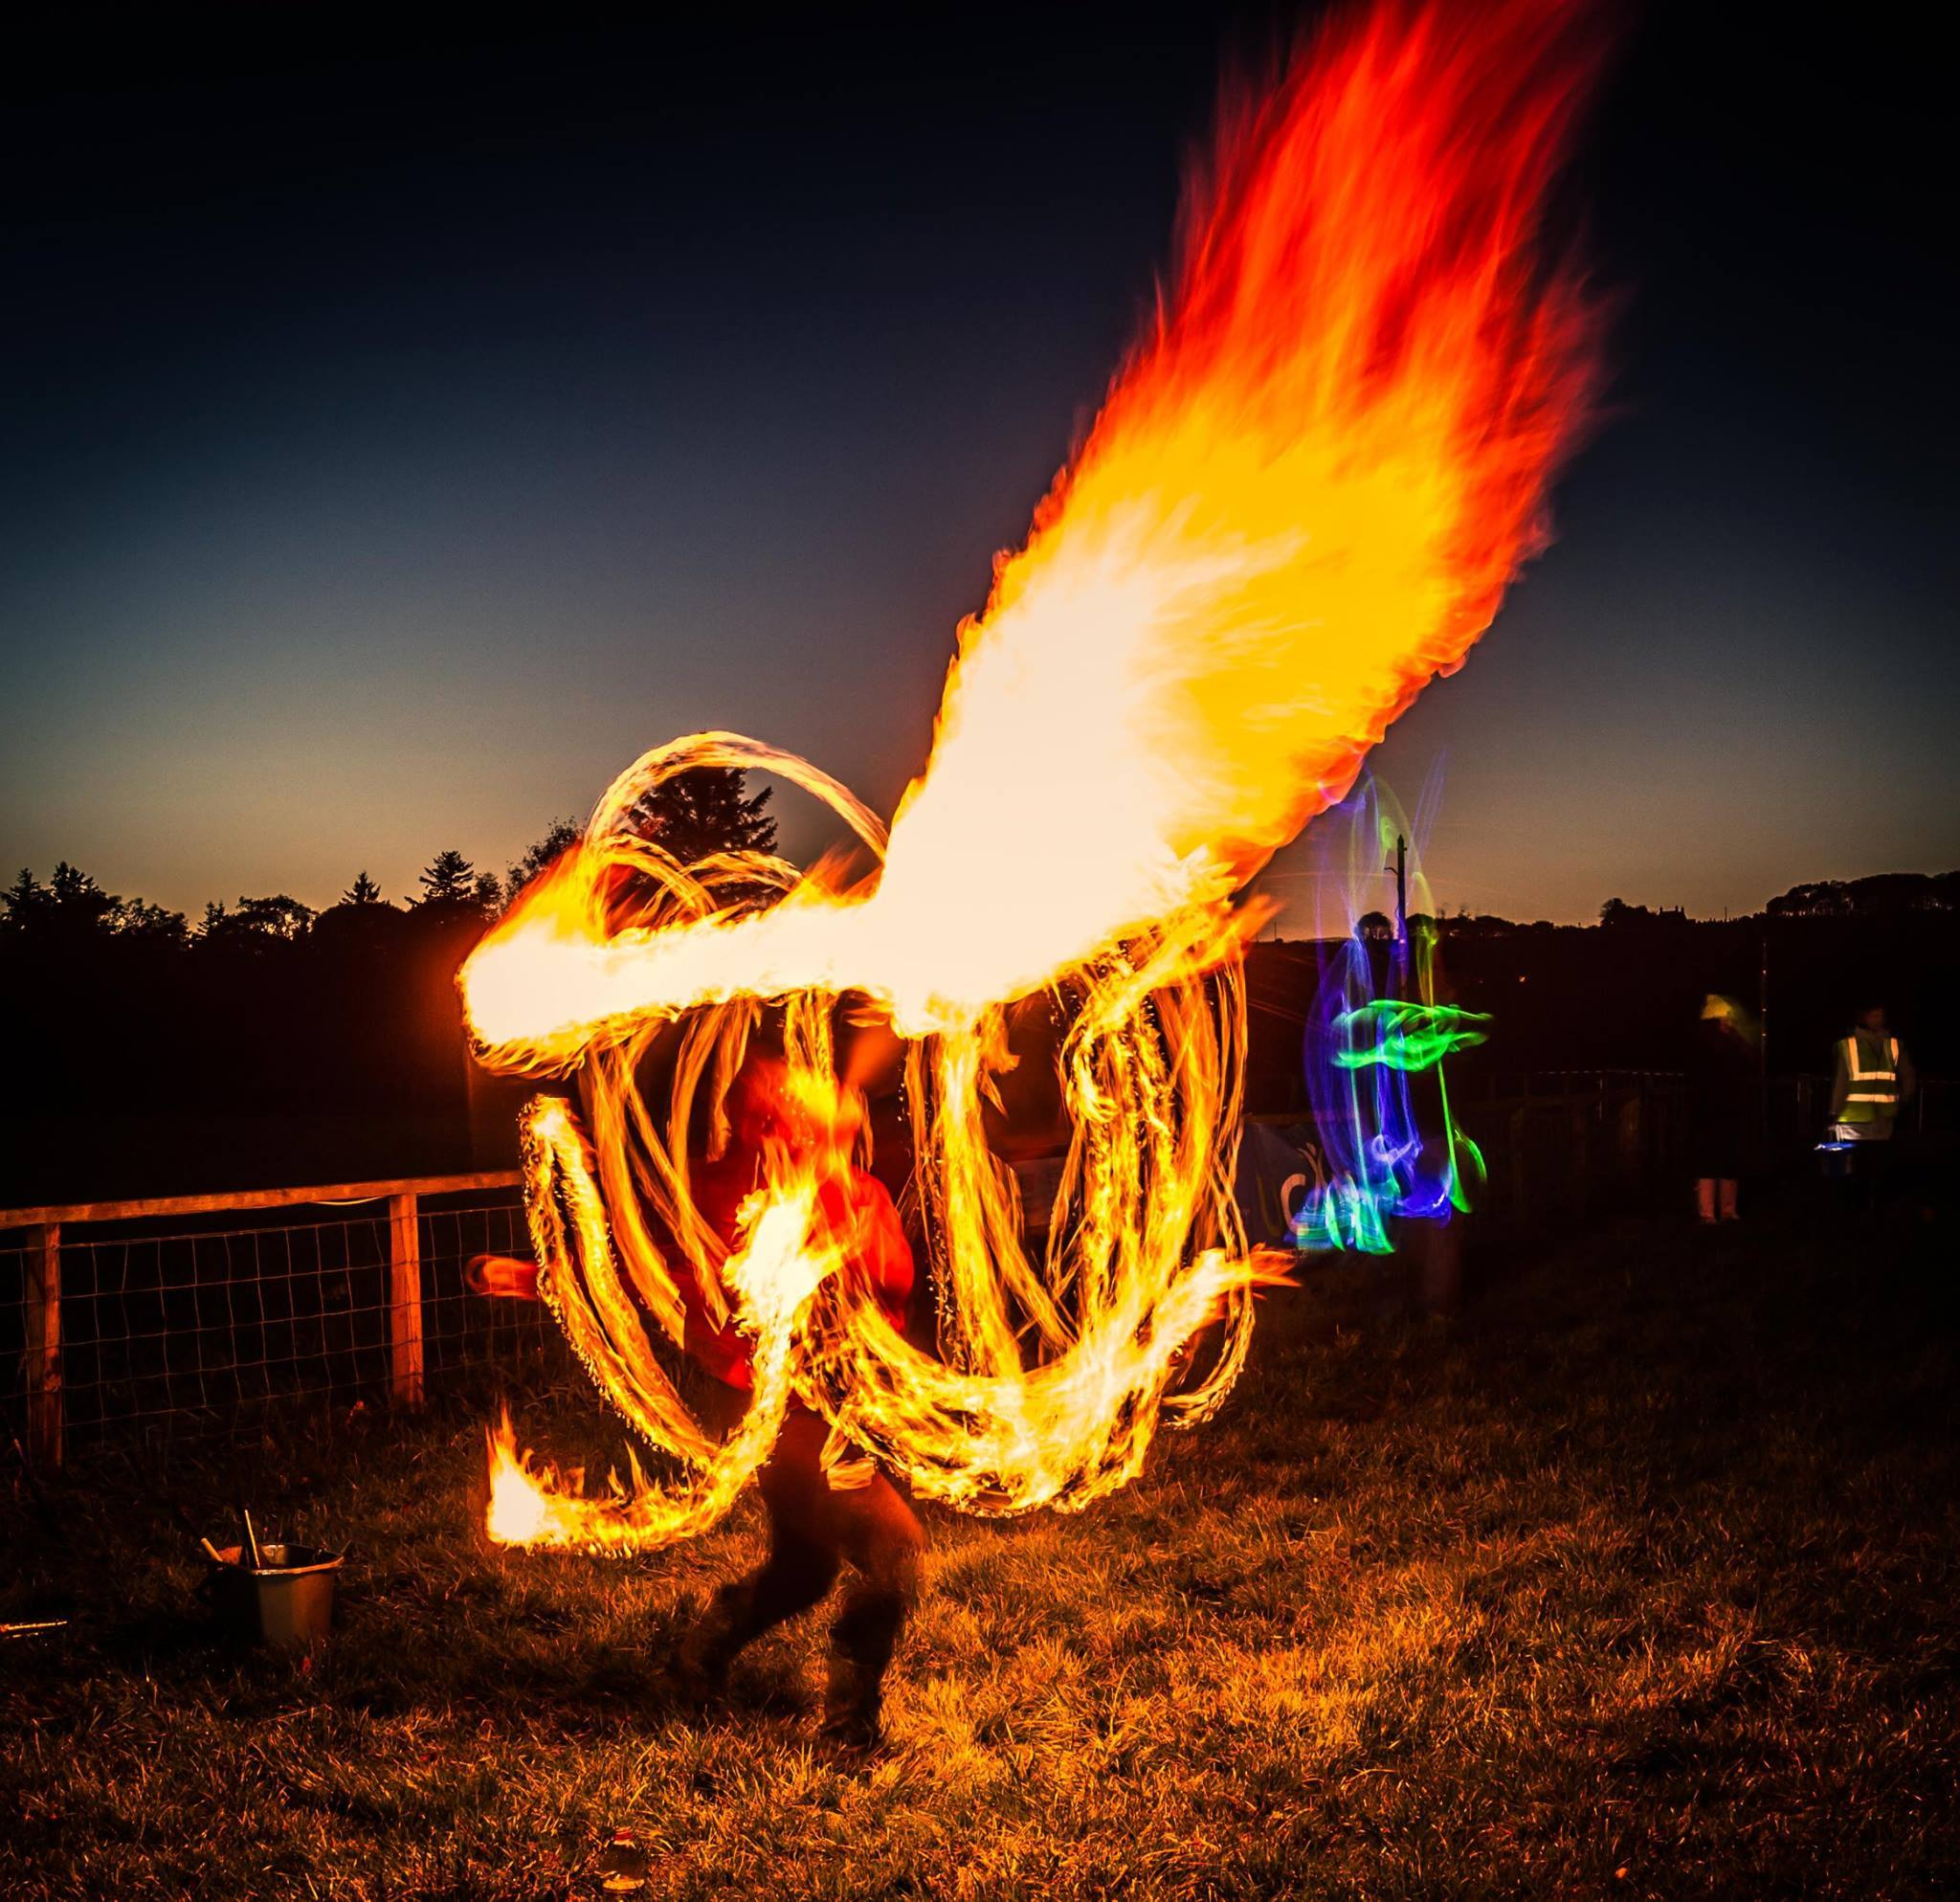 A firebreather at this year's Fireworks Against Cancer event. Photo by Stuart Fenty.